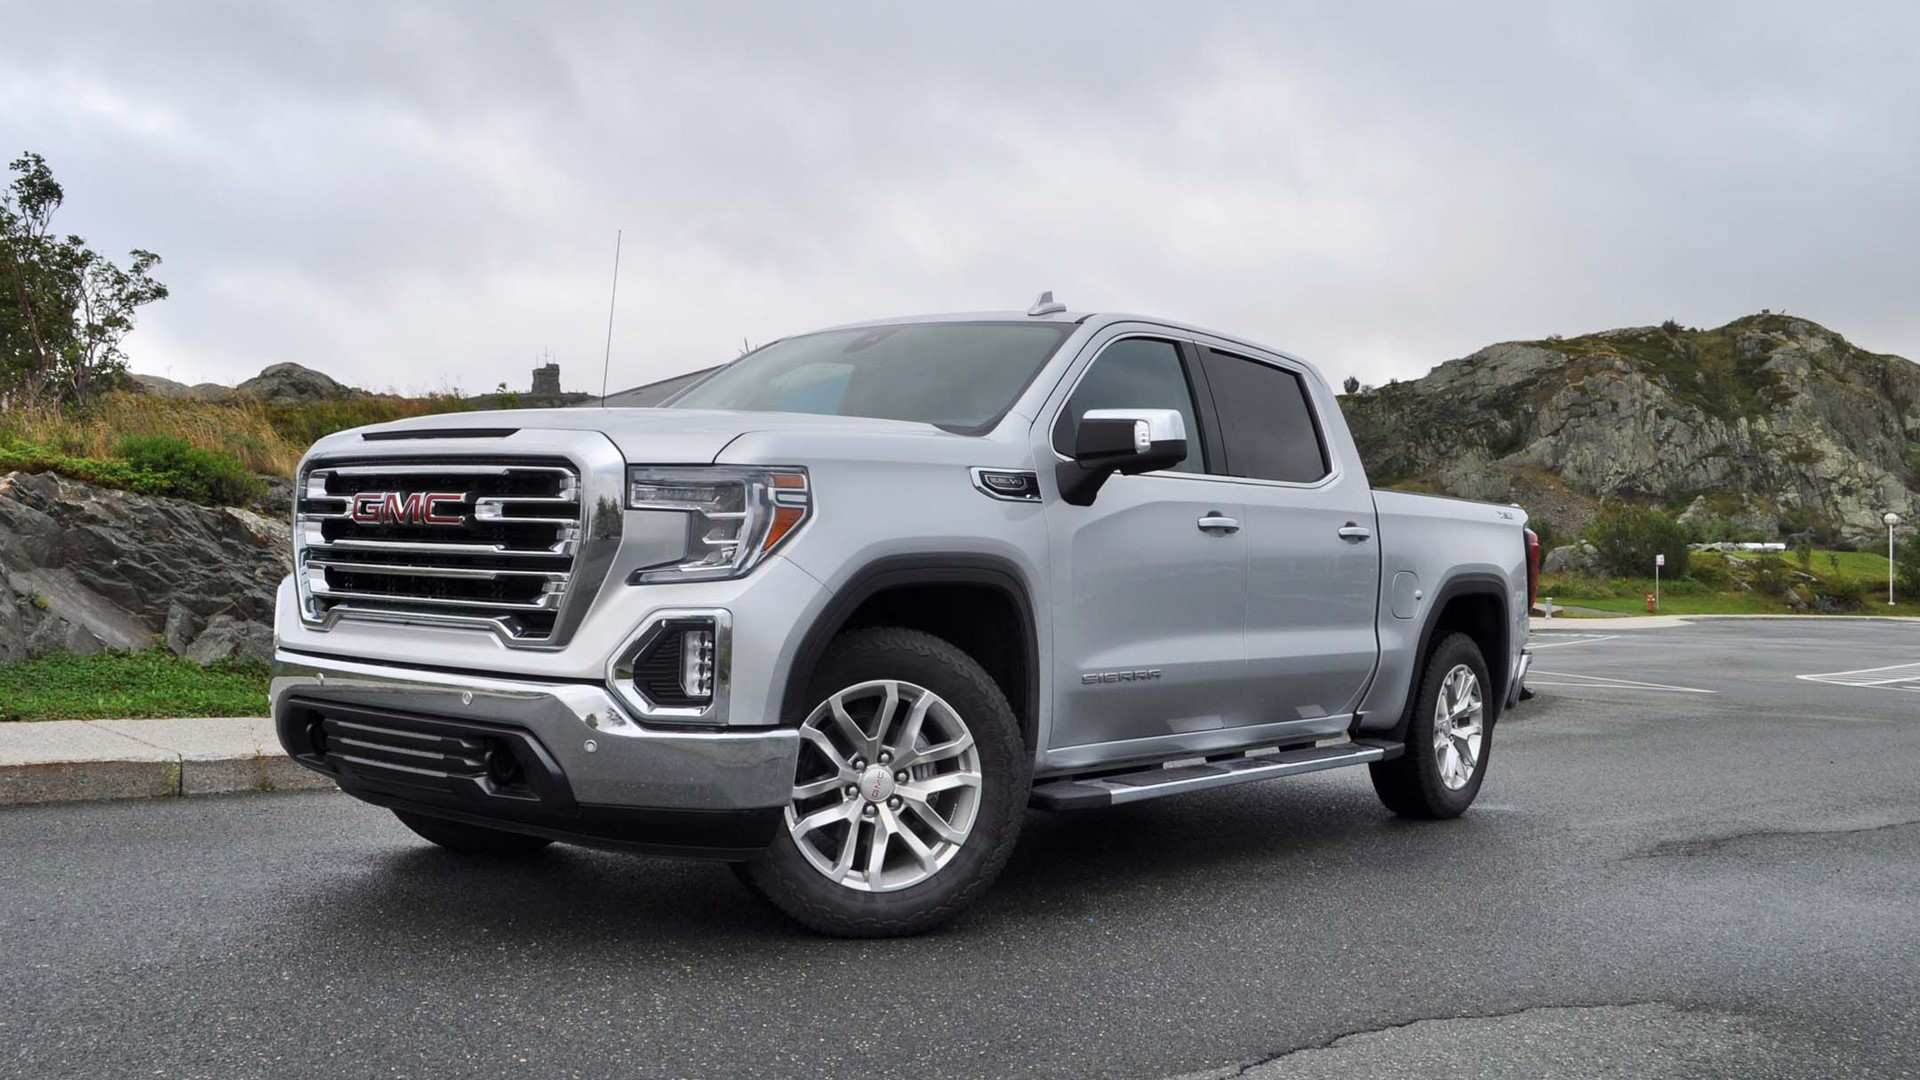 86 Best 2019 Gmc Sierra Denali 1500 Hd Speed Test